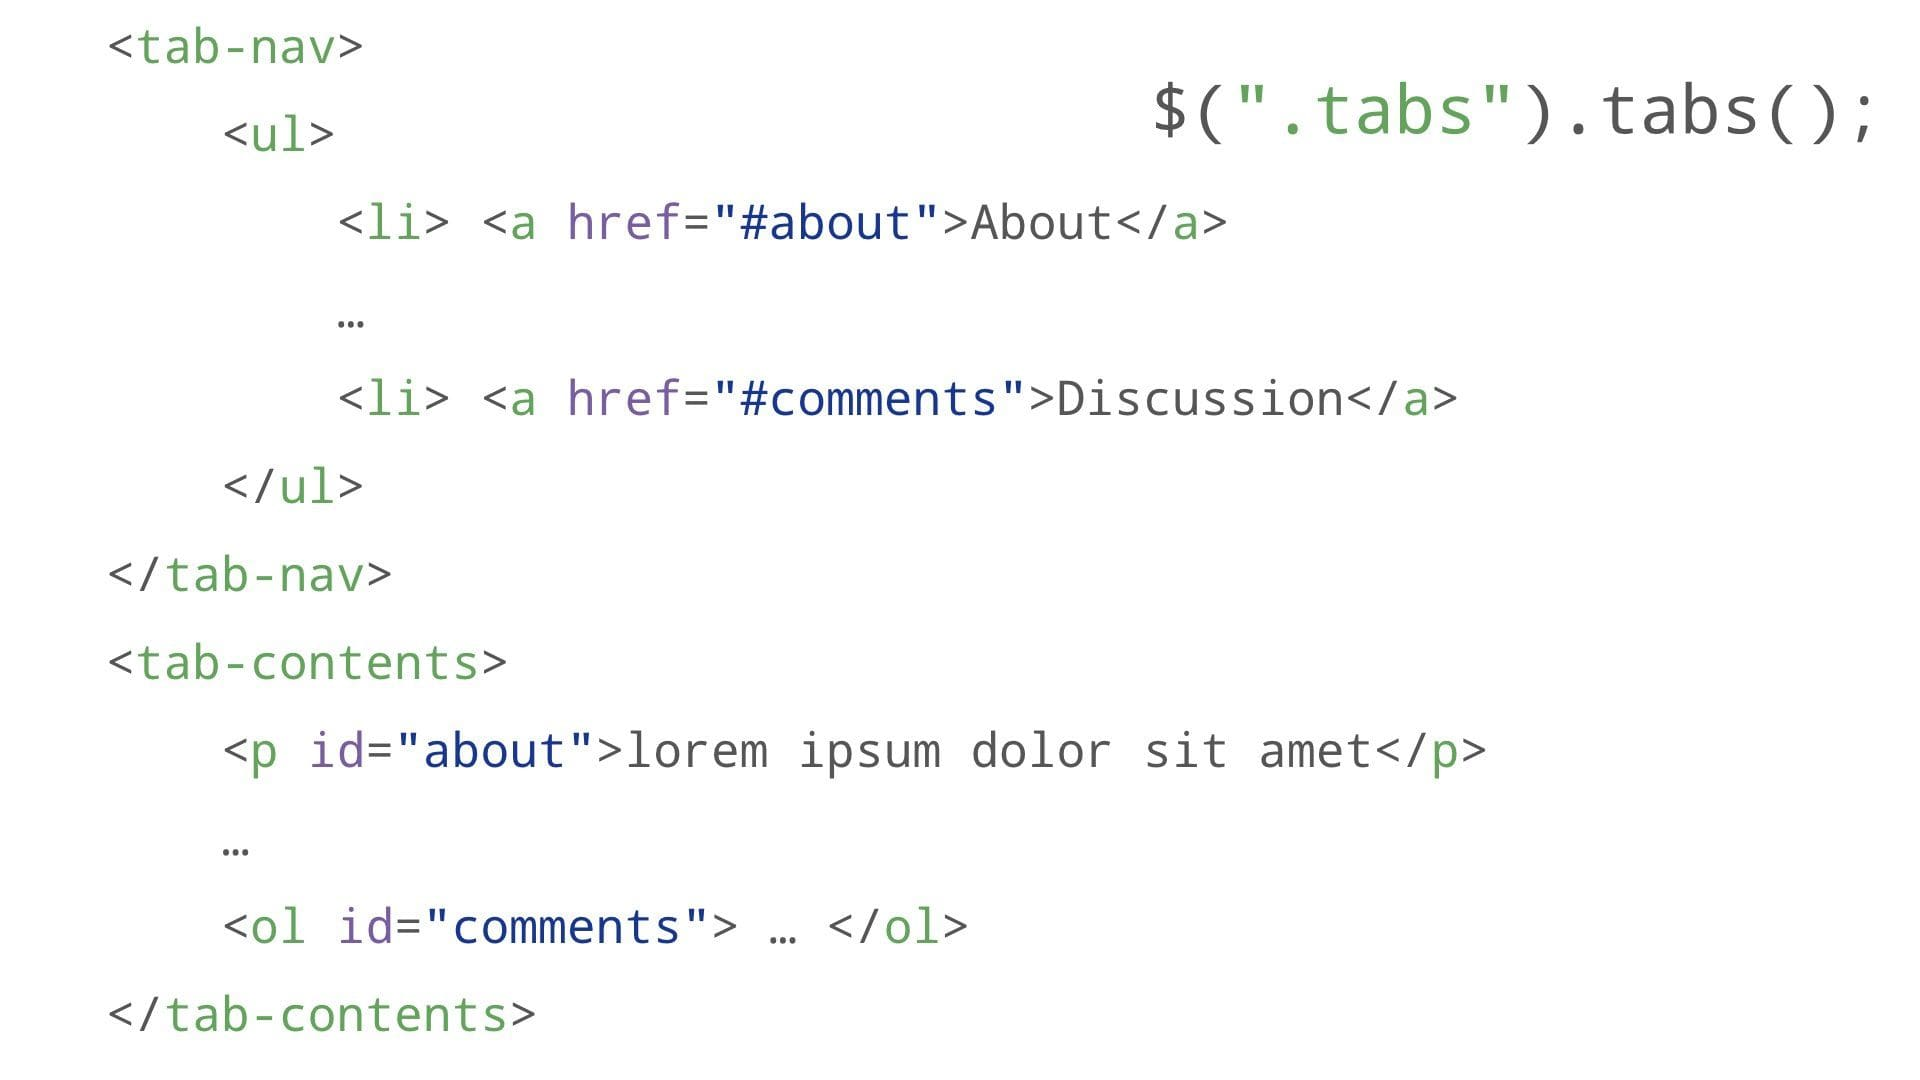 tabs markup with tab-contents